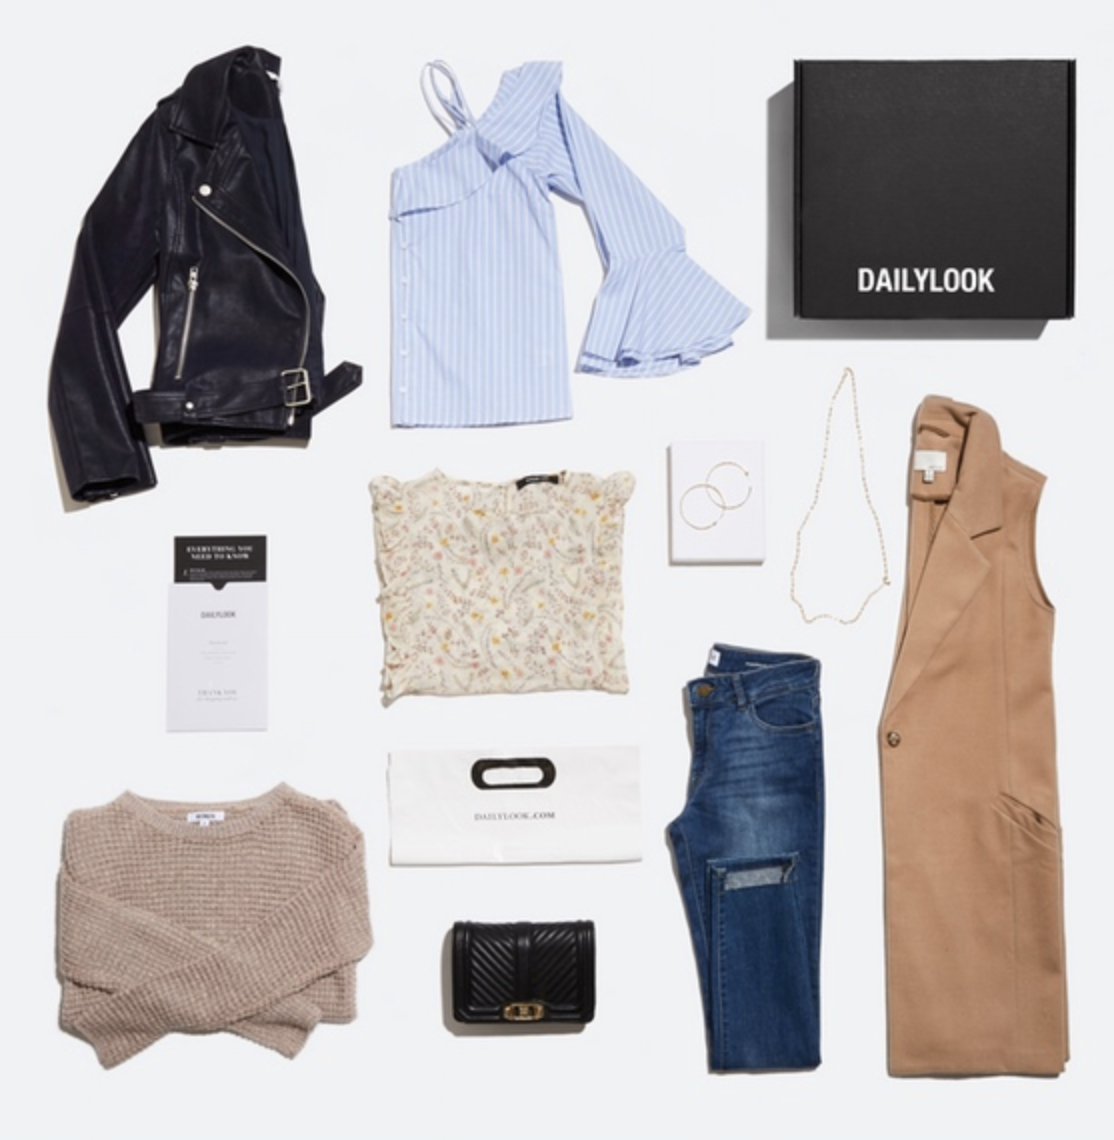 Dailylook subscription box items, including dark denim, an oatmeal sweater, and gold jewelry